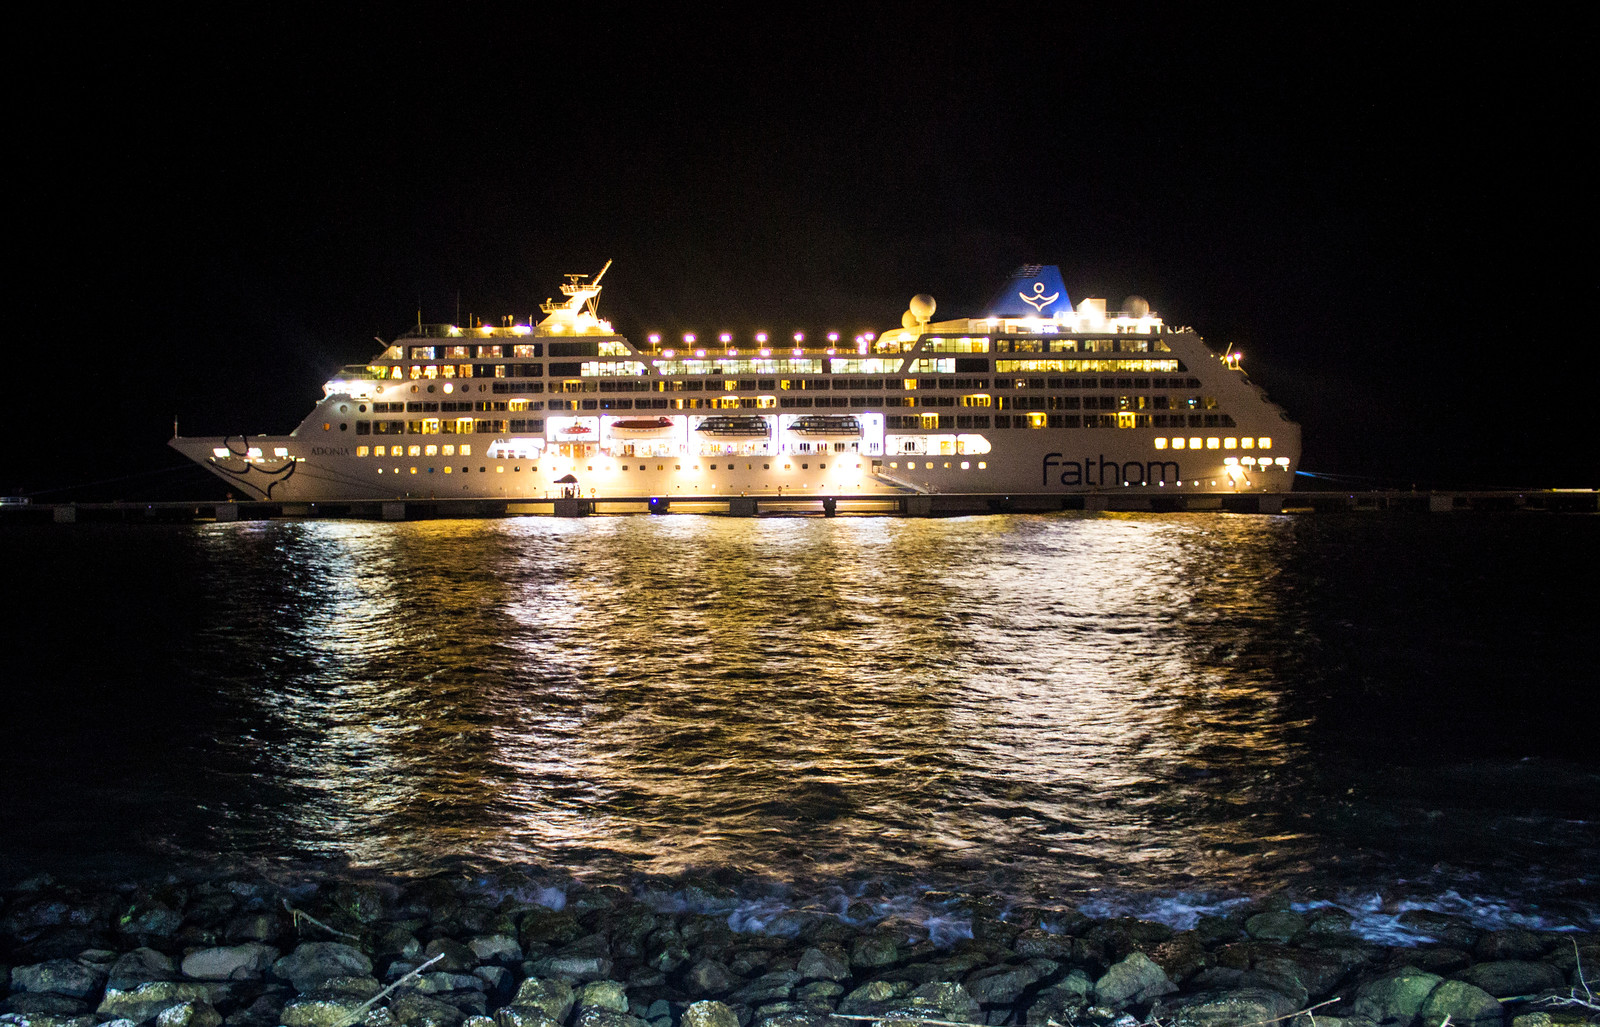 Amber Cove Dominican Republic Cruise Ship Port Guide - Fathom Cruise Ship at night all lit up